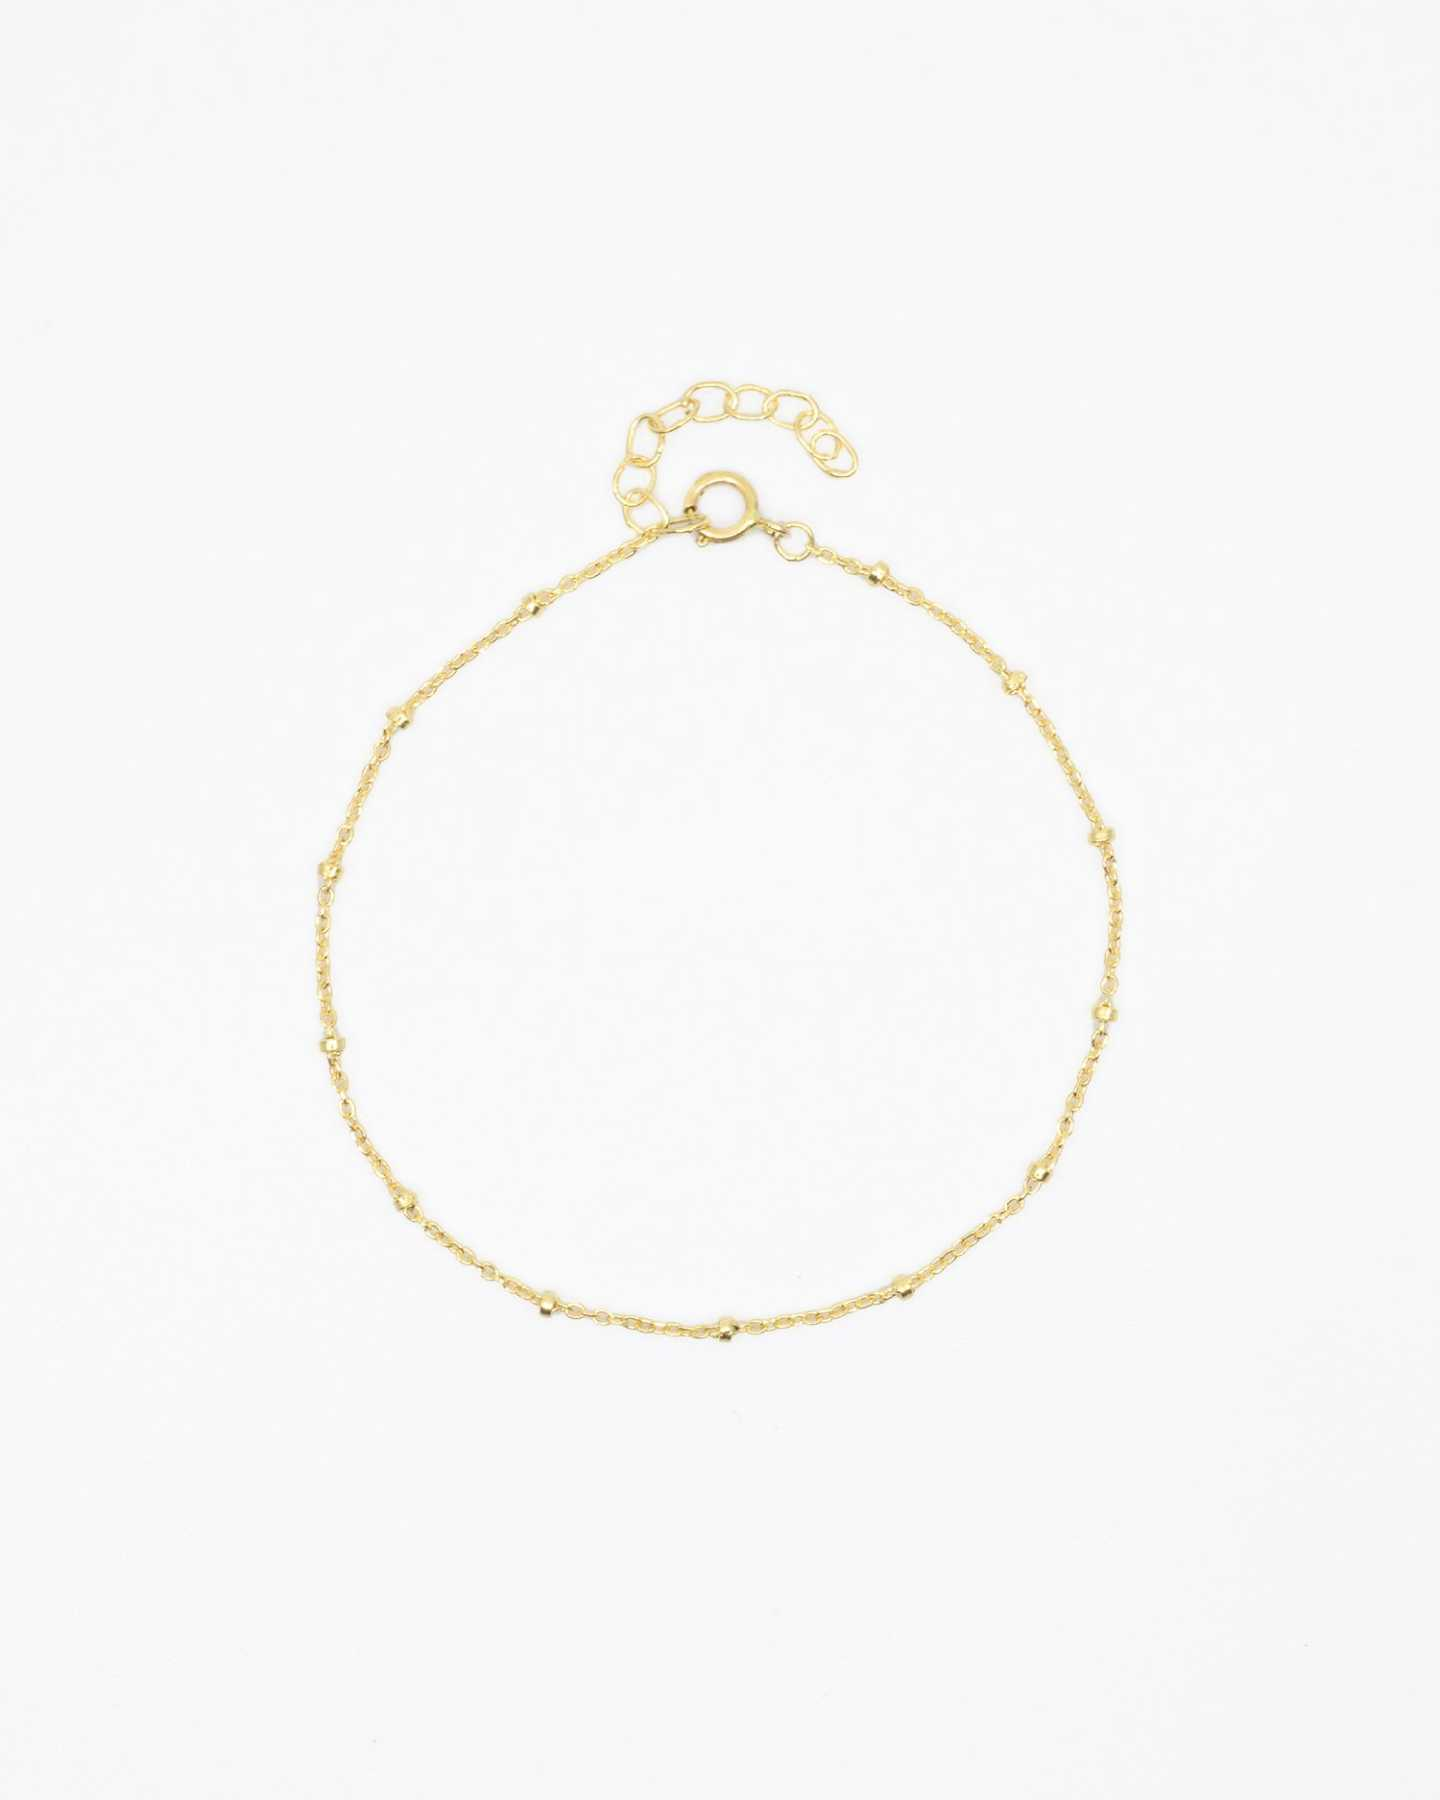 14k Gold Beaded Bracelet - Yellow Gold